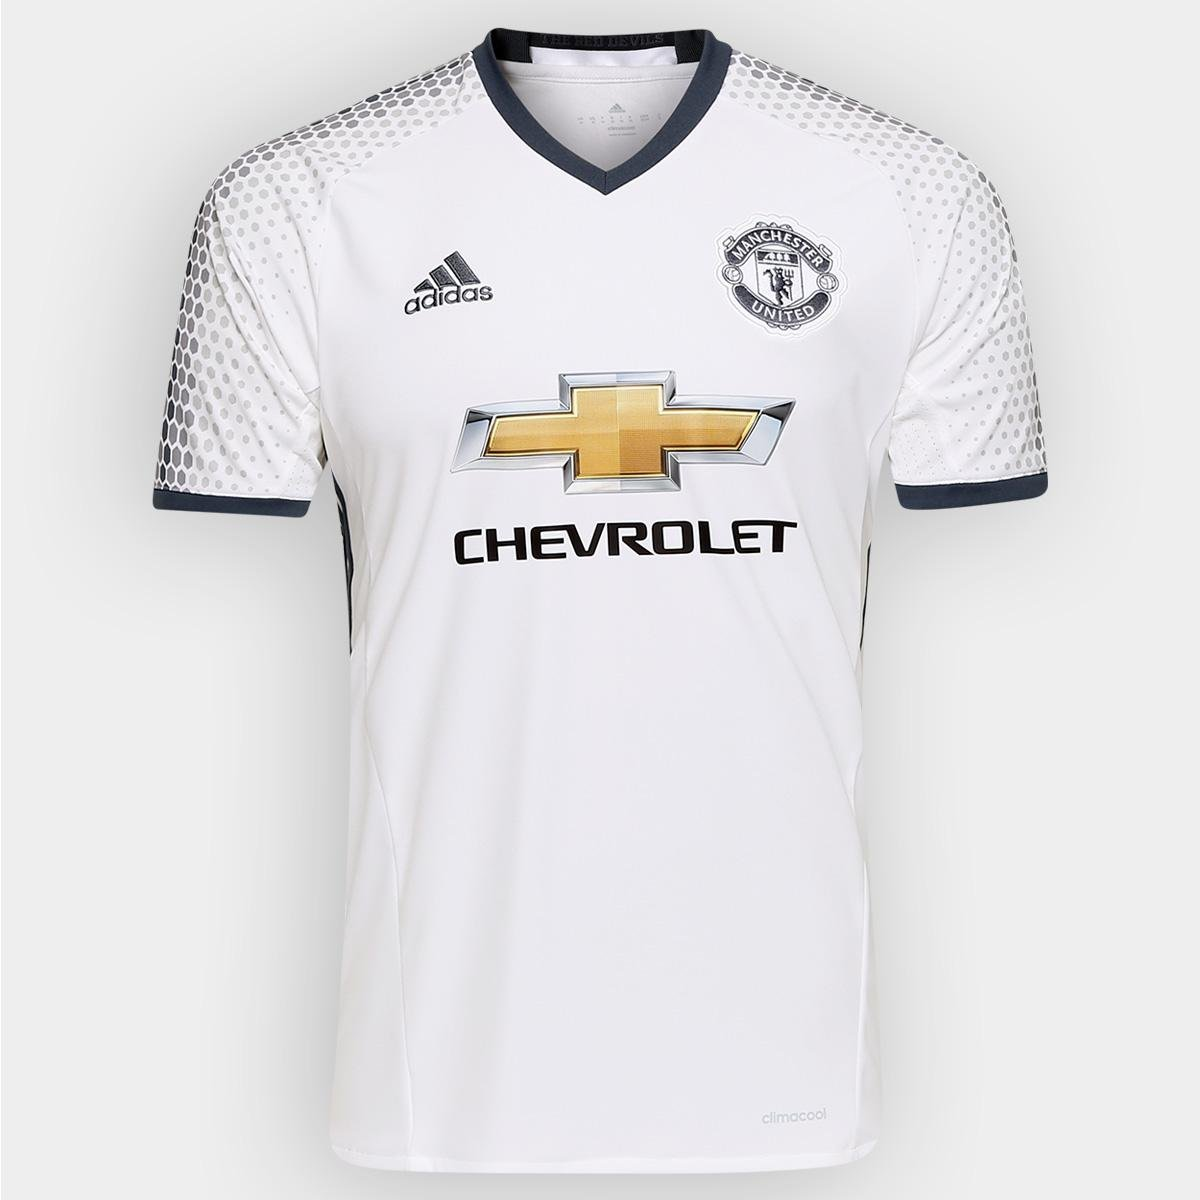 c9f0d1a14 Camisa Manchester United Third 16 17 s nº - Torcedor Adidas Masculina -  Compre Agora